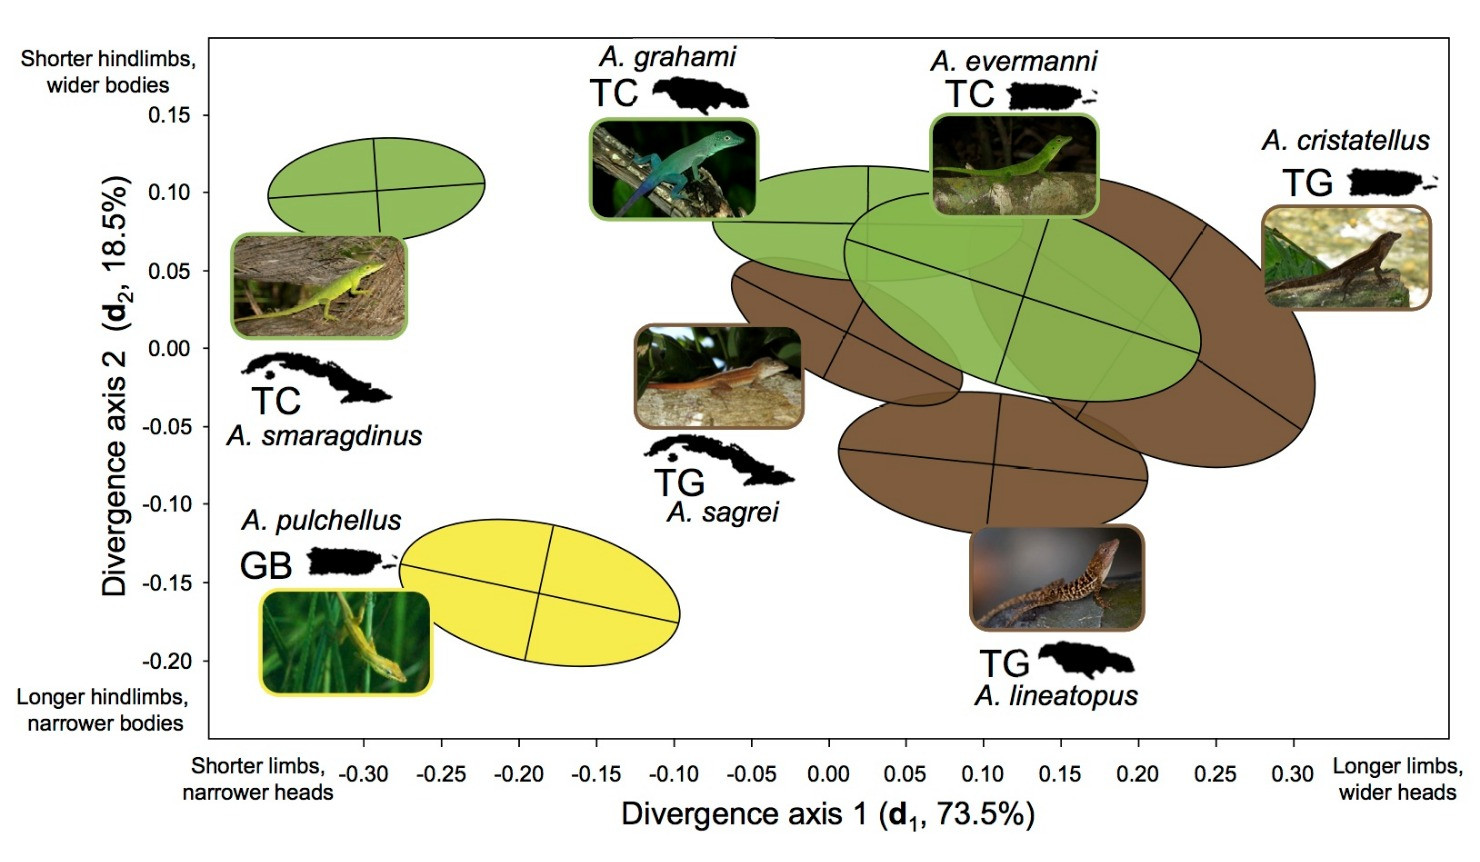 Adaptive radiation along a deeply conserved genetic line of least resistance in Anolis lizards